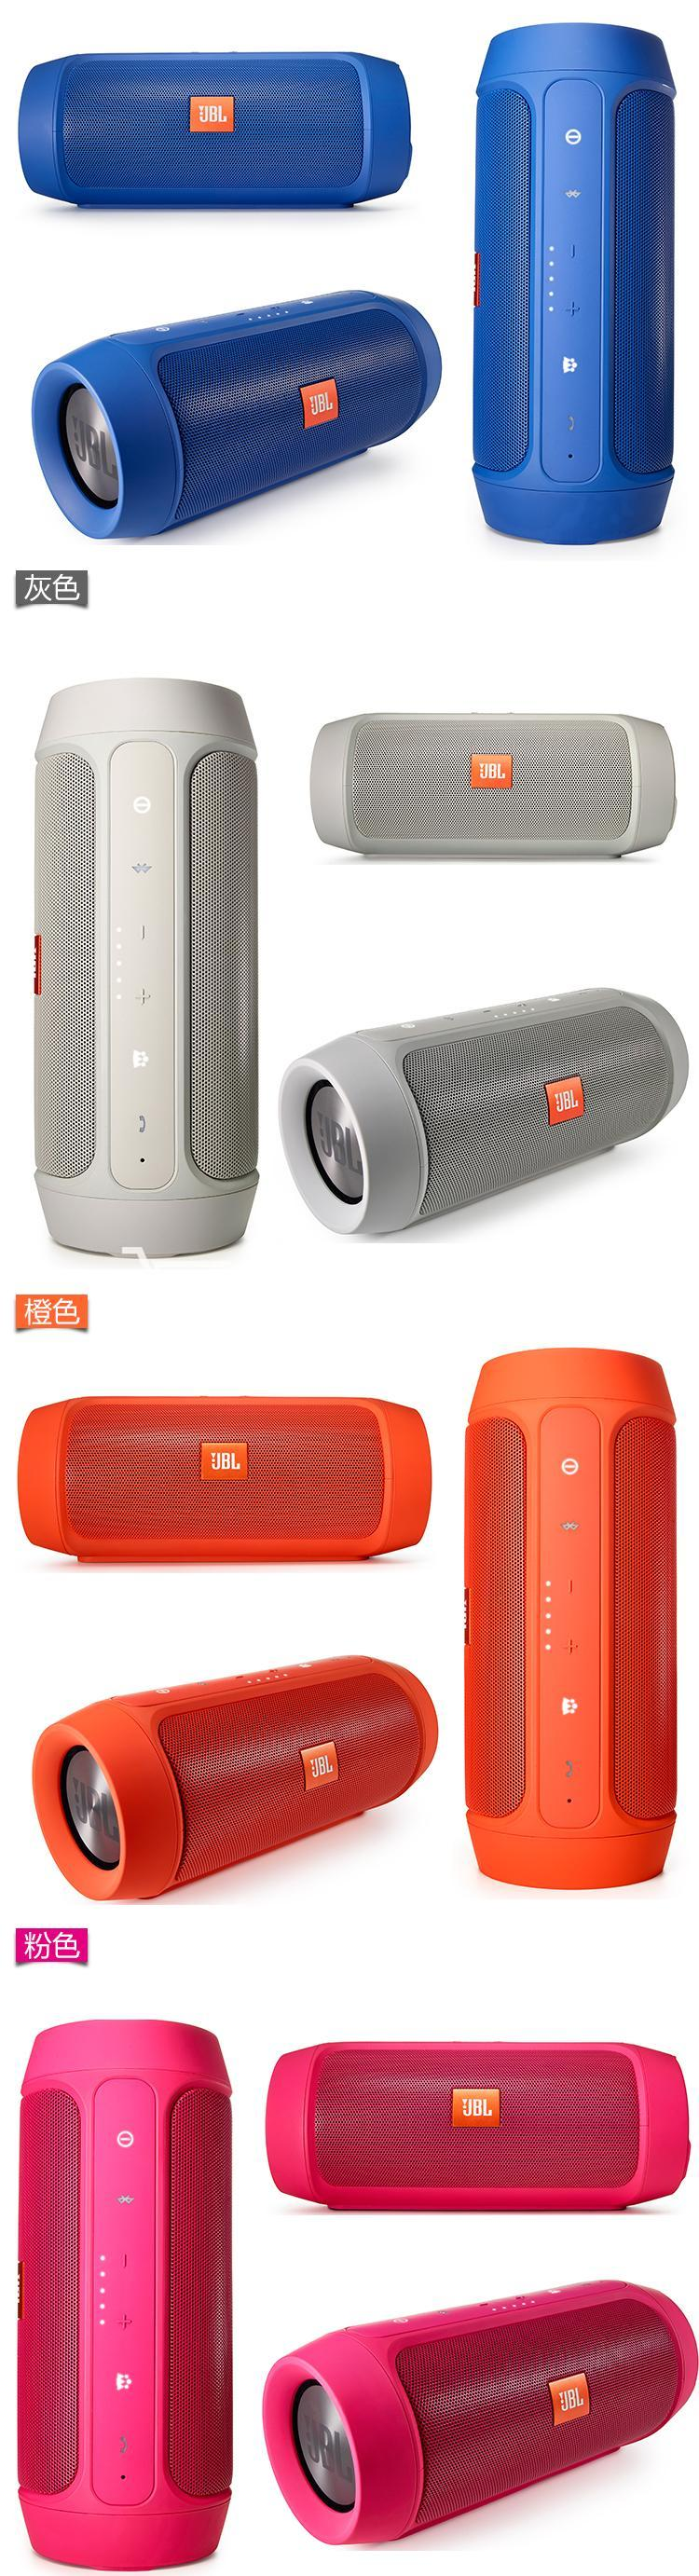 Best Deal Jbl Charge 2 Portable Bluetooth Speaker With Usb Charger Mini Wireless 1 Power Bank Mobile Phone Accessories Special